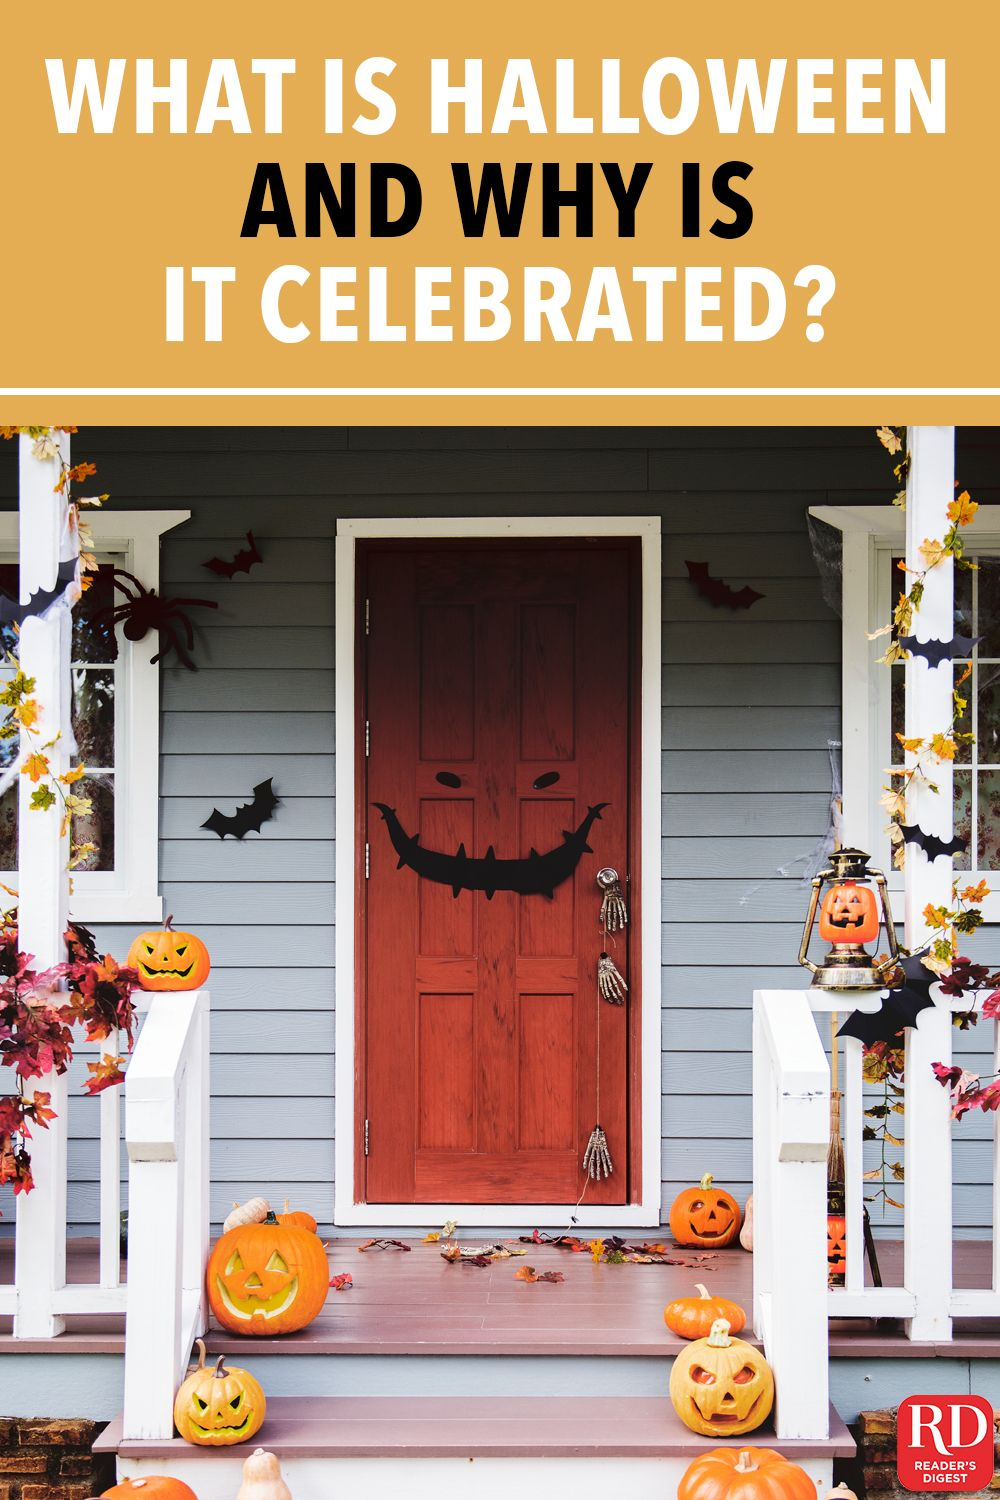 What Is Halloween and How Is It Celebrated? What is